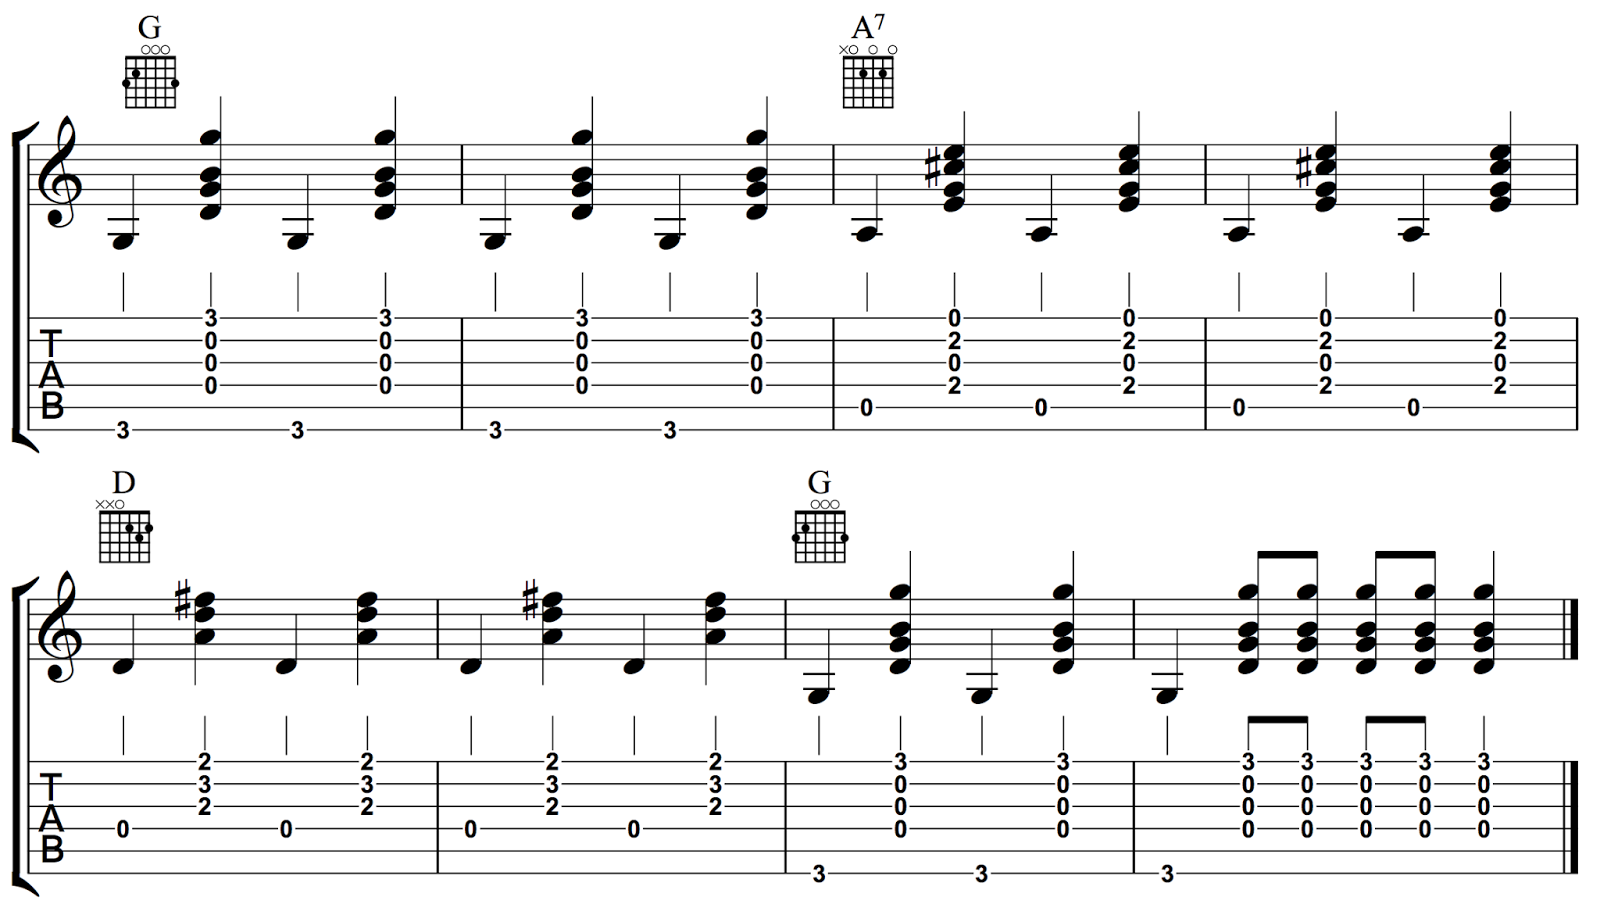 Ghs Guitar Guitar I A Am A7 Chords And Song